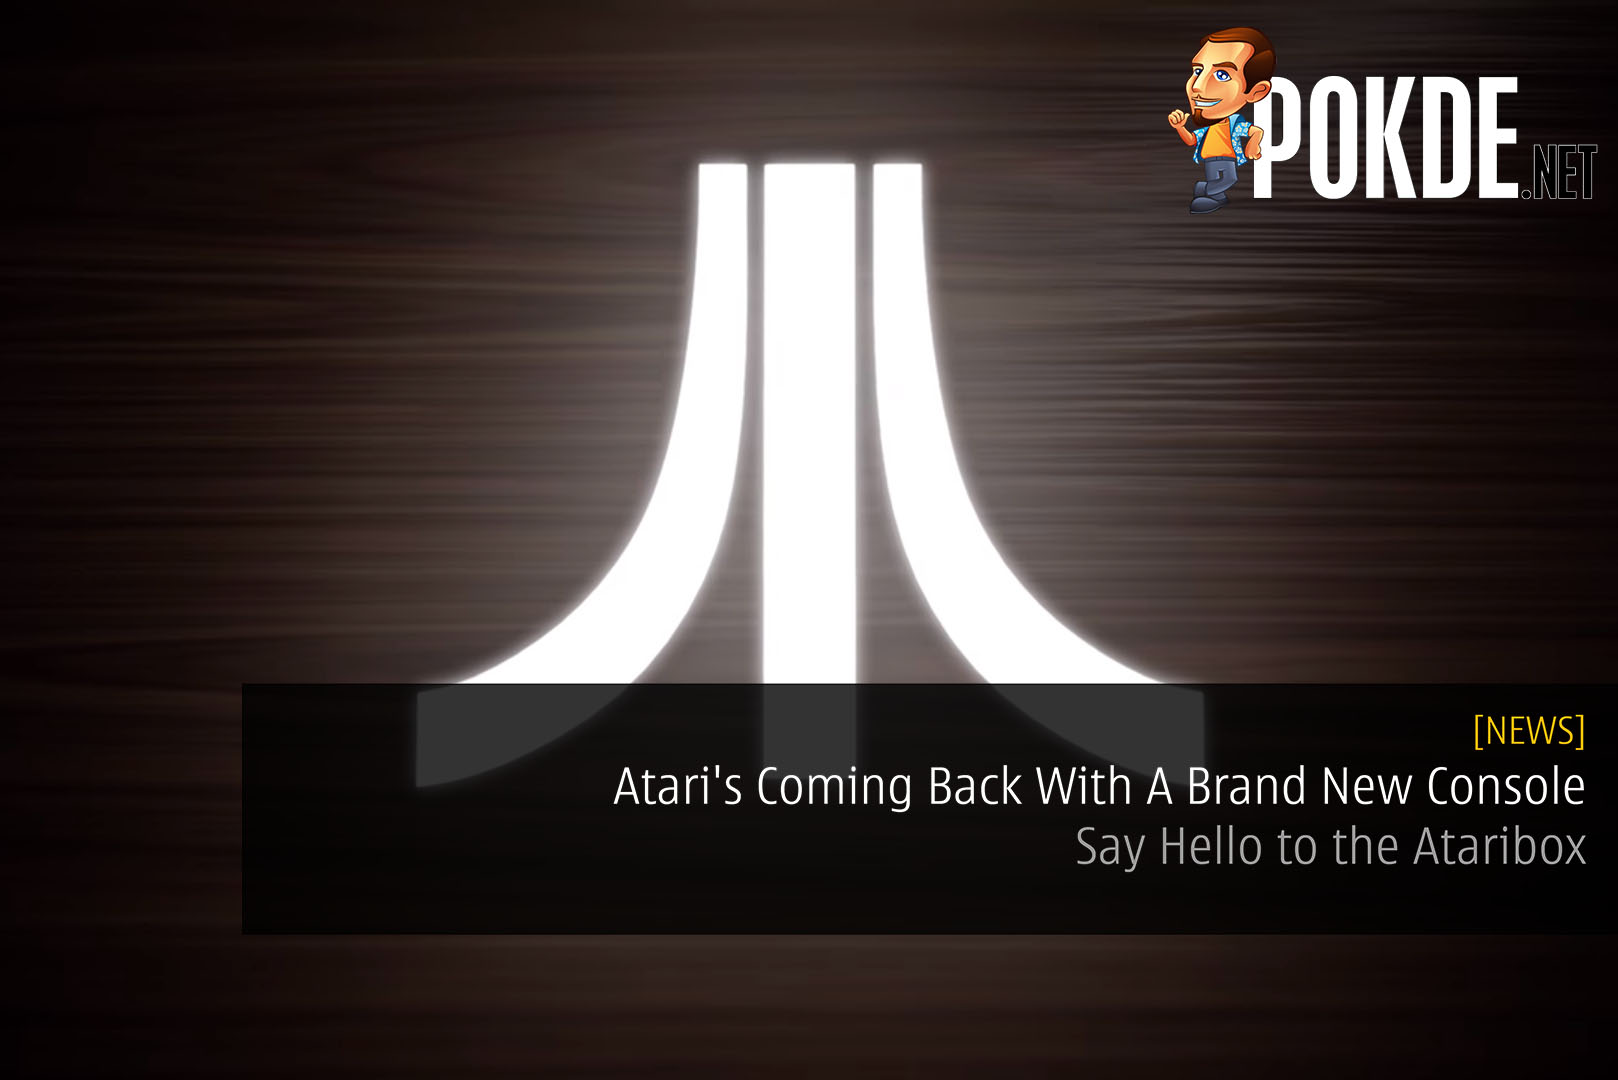 Atari's Coming Back With A Brand New Console - Say Hello to the Ataribox 29